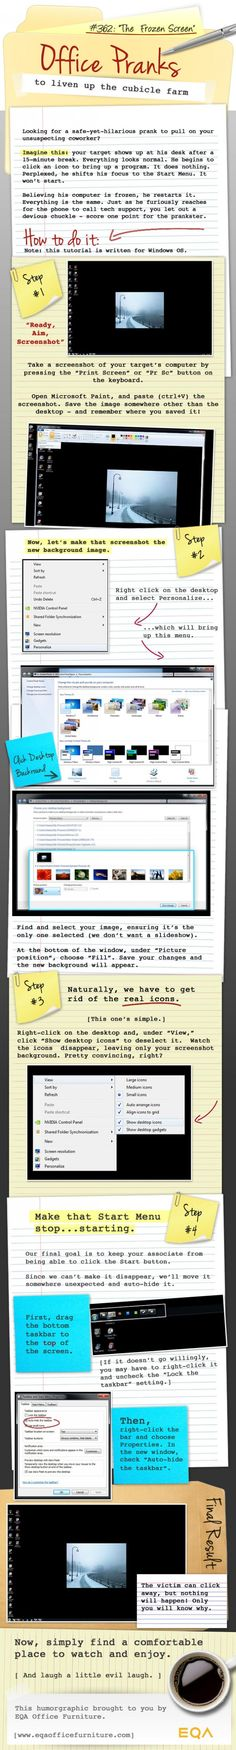 Are you looking for a safe-yet-hilarious prank or hack to pull on your unsuspecting friend, buddy or coworker's. Then read this tutorial, written for Windows Operation System (OS).  Like us on Facebook : http://facebook.com/Blogpad.DigitalWorld  http://ipadfour.blogspot.com/2012/11/the-frozen-screen-computer-prank.html